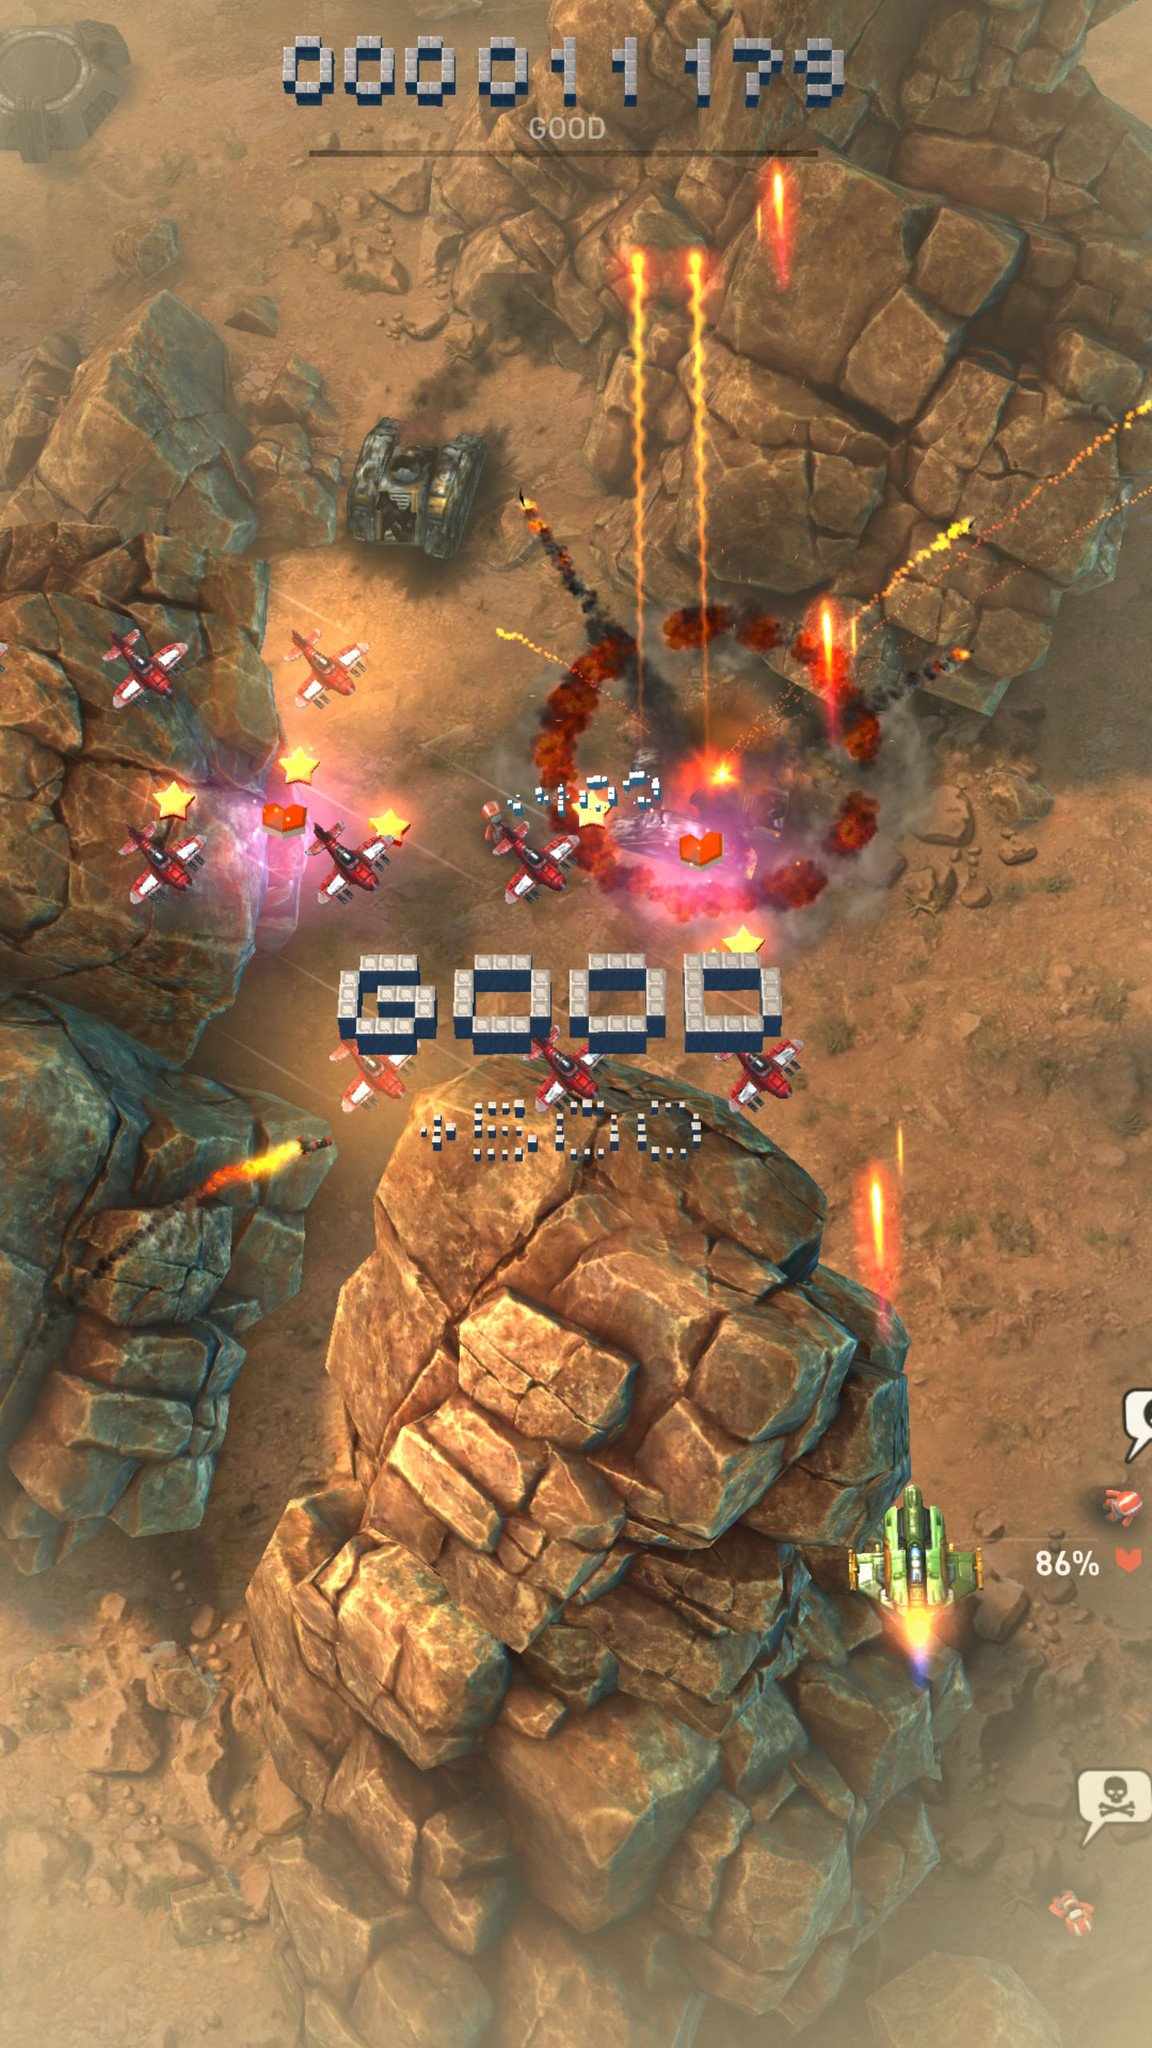 Best action games for Android | Android Central